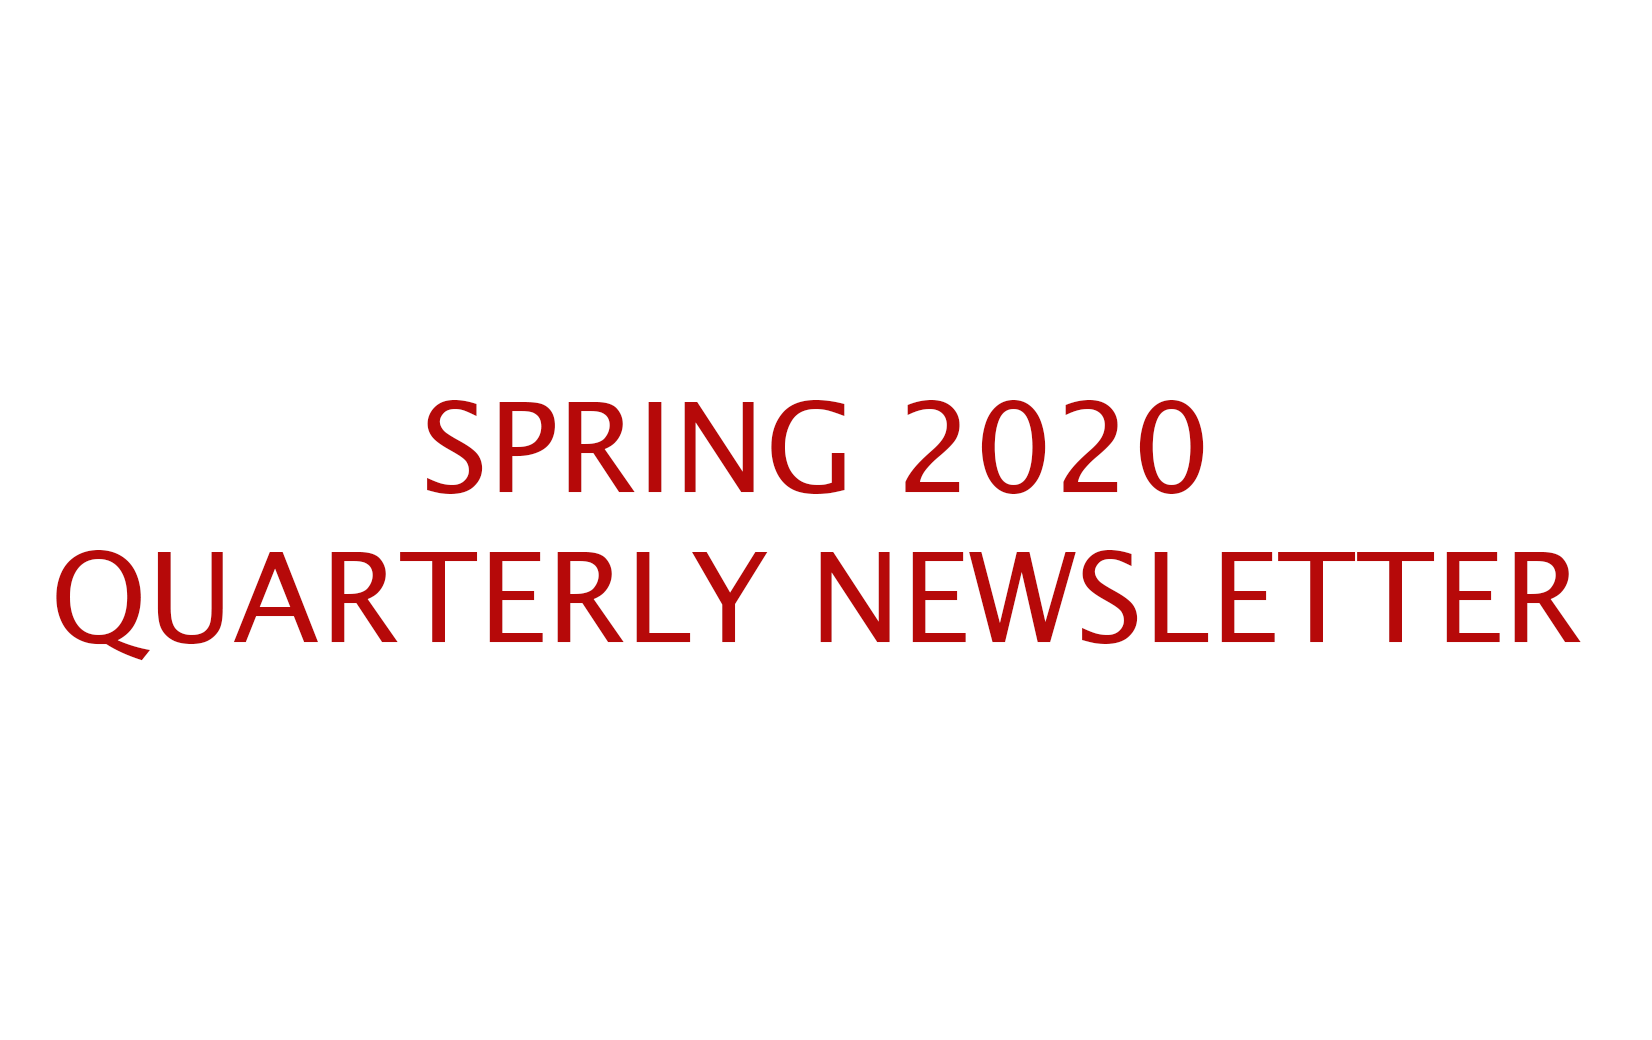 QUARTERLY NEWSLETTER: SPRING 2020